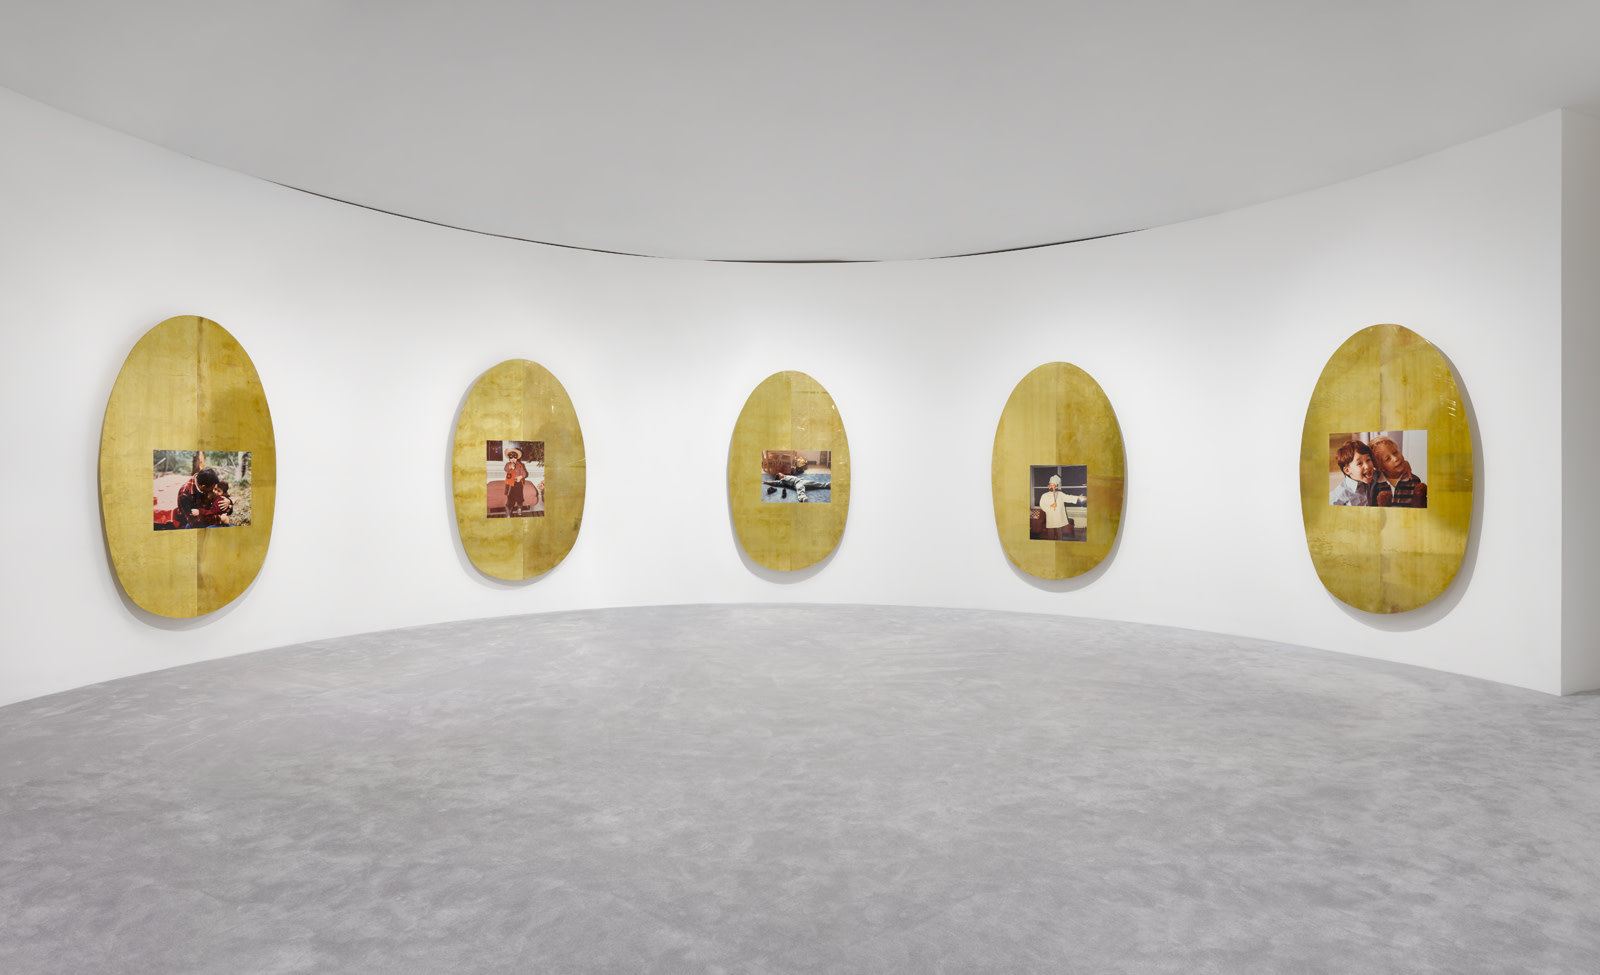 <p>Installation view, Jordan Wolfson, ARTISTS FRIENDS RACISTS, 31 January – 29 February 2020, 62 Kingly Street W1</p><p>Photography: Jack Hems</p>